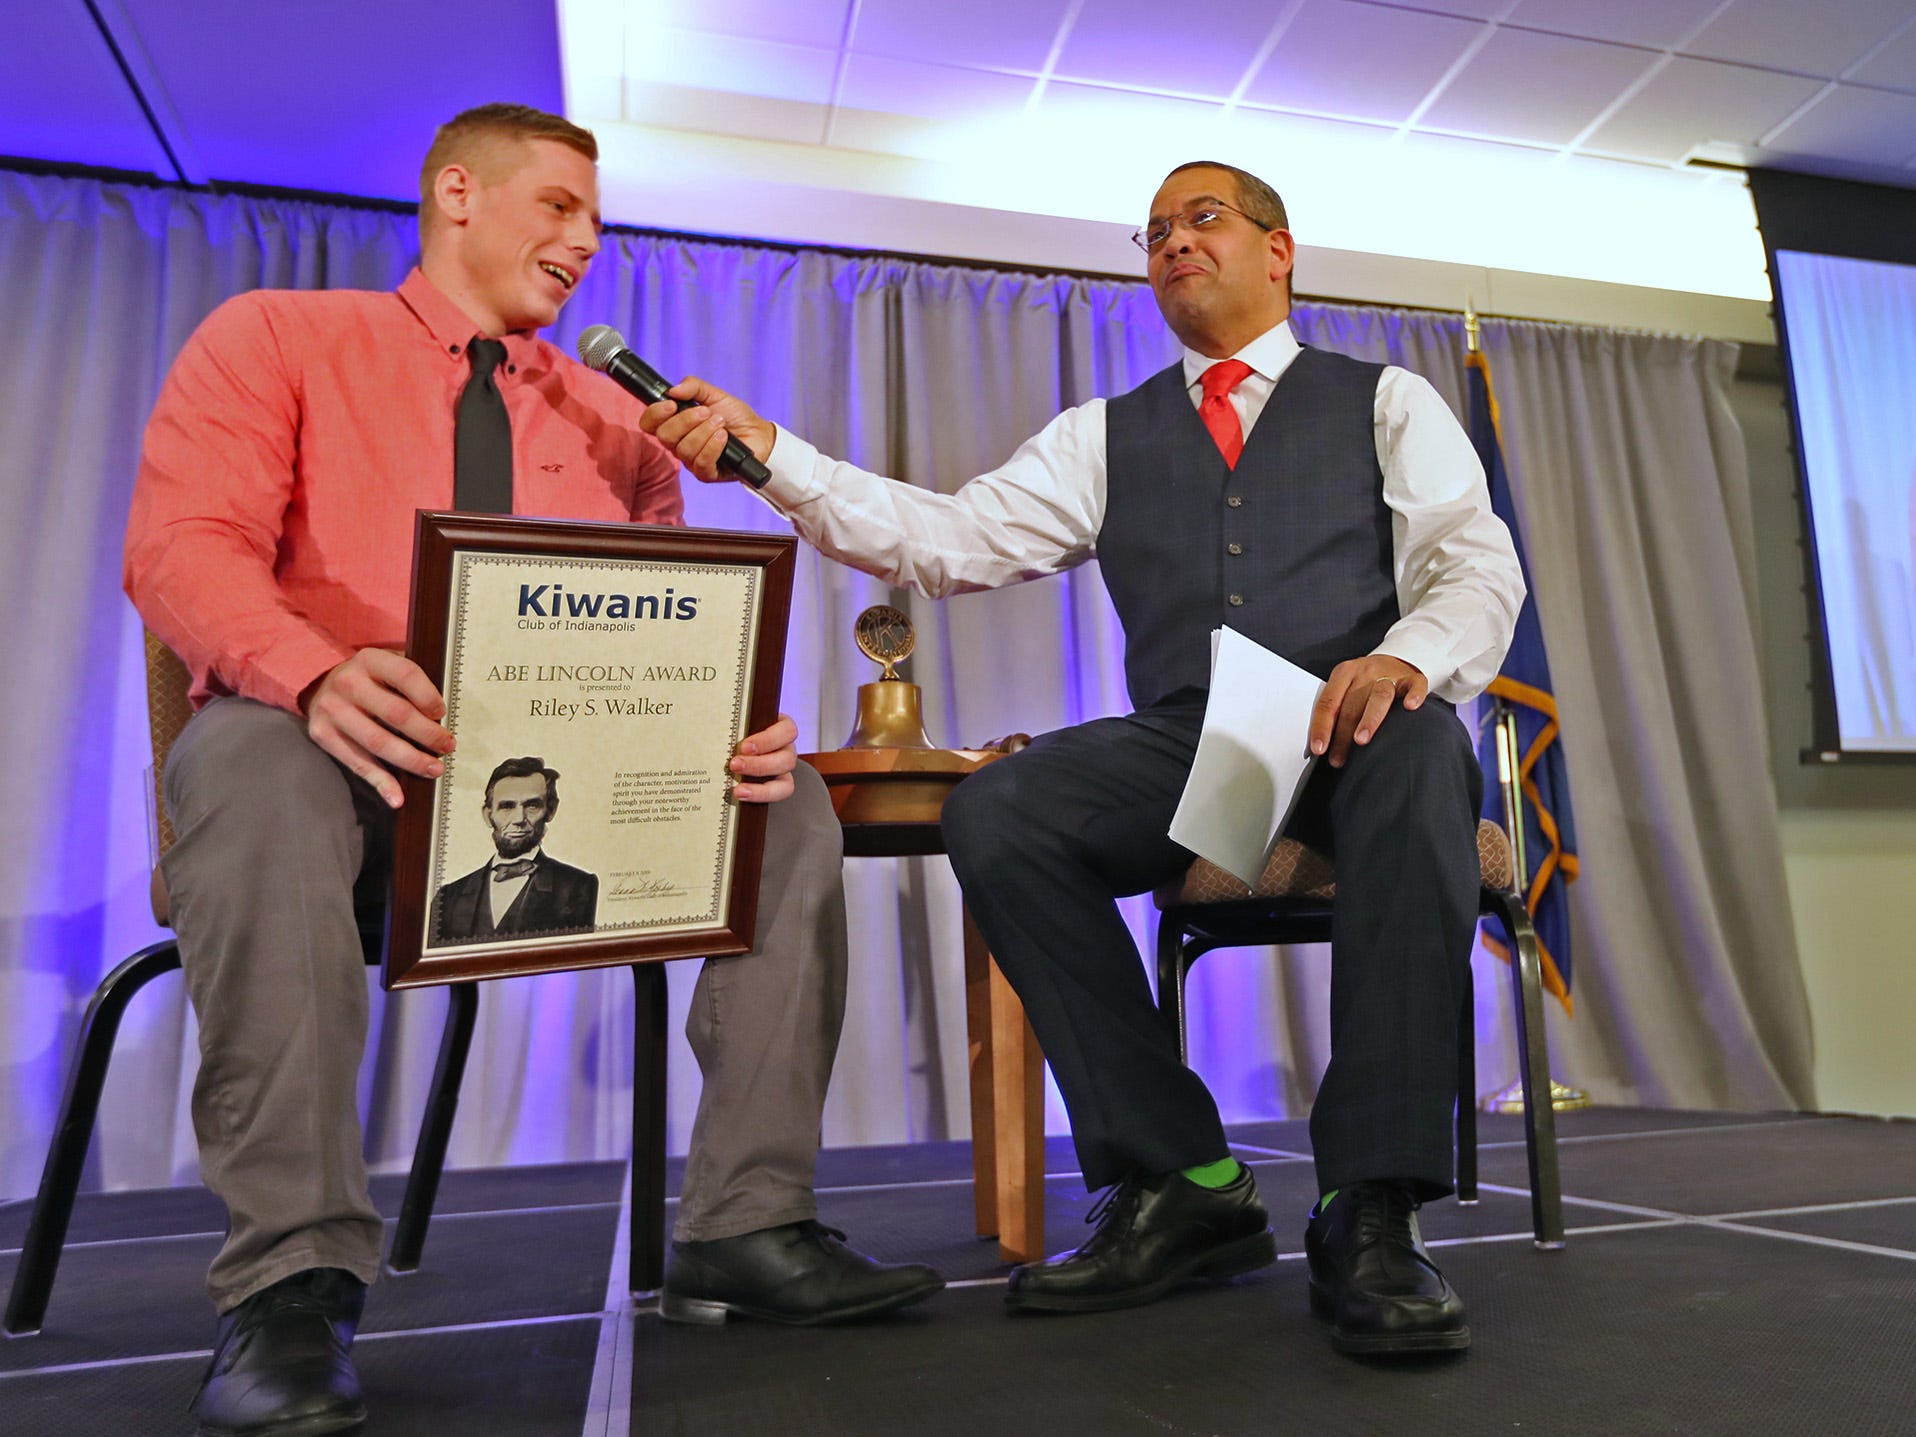 Riley Walker, left, from Speedway High School, is interviewed by Rafael Sanchez after being presented the 4th Place Scholarship award at the 44th  Annual Abe Lincoln Awards Program, Friday, Feb. 8, 2019. The Kiwanis Club of Indianapolis program was held at Ivy Tech Community College.  20 high school student were honored at the annual event which celebrates overcoming adversity in life to succeed.  Four of the 20 were given scholarships.